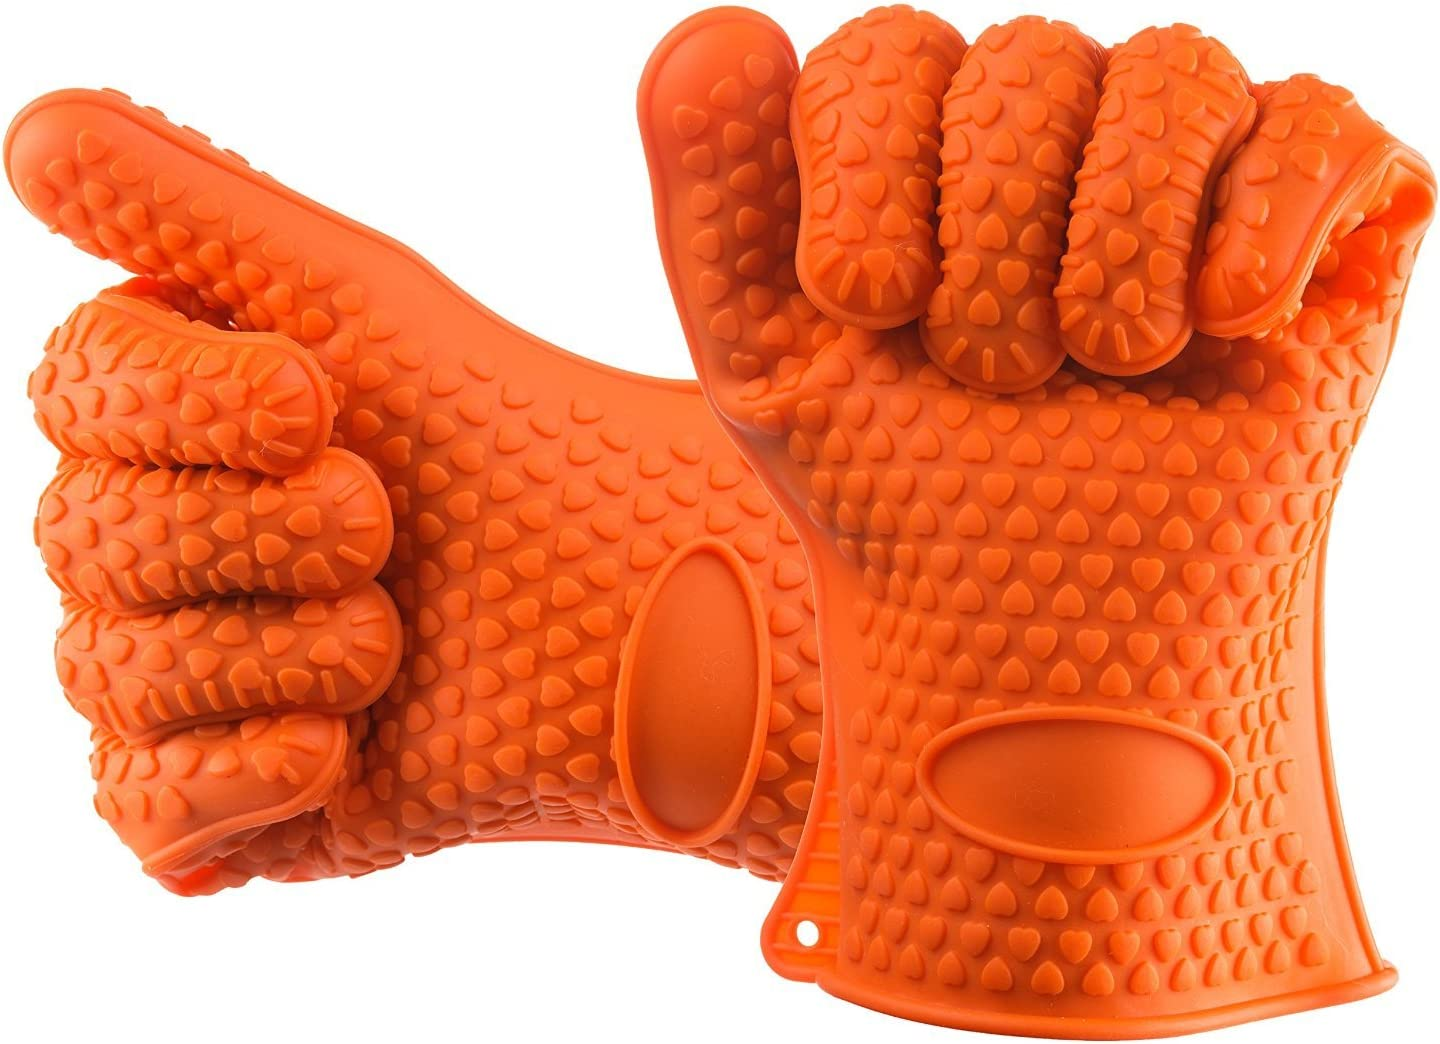 Bcurb Silicone BBQ Grill Oven Mitts Gloves 5 Fingers Glove for Cooking Baking Potholder Boiling Barbecue Grilling Microwave Heat Resistant and Protection (Orange - 2 Glove)